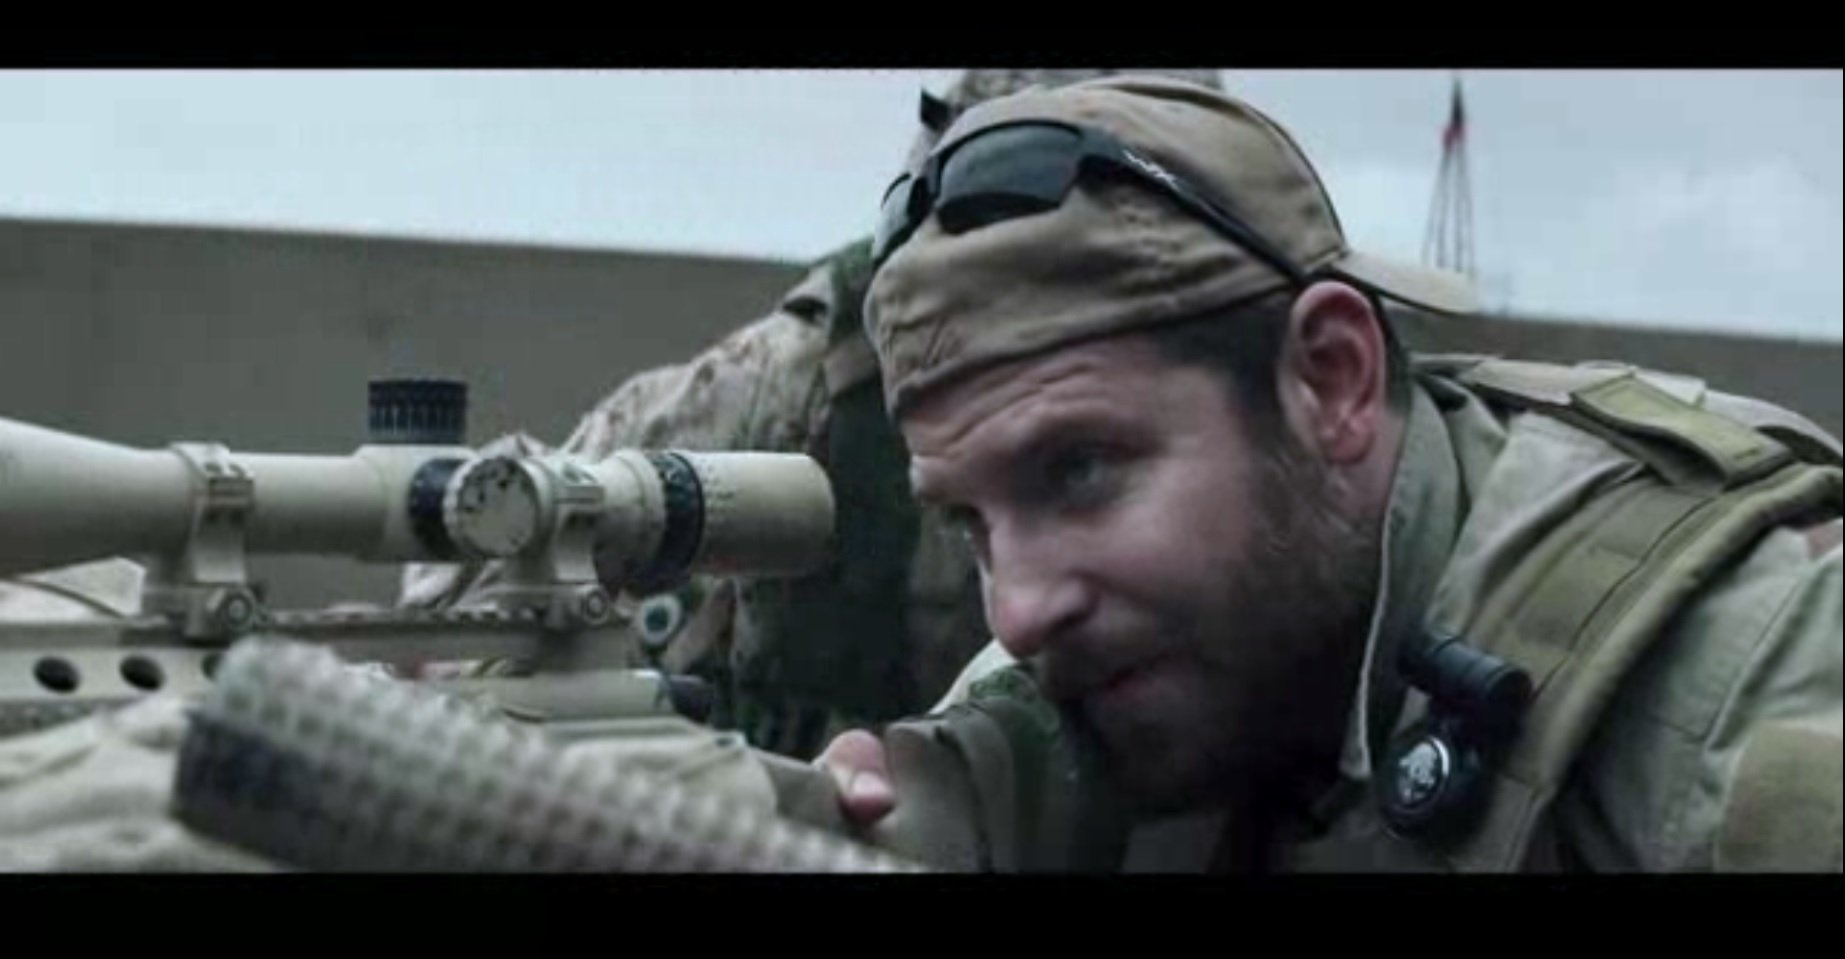 American Sniper 31 Widescreen Wallpaper   Hivewallpapercom 1845x959